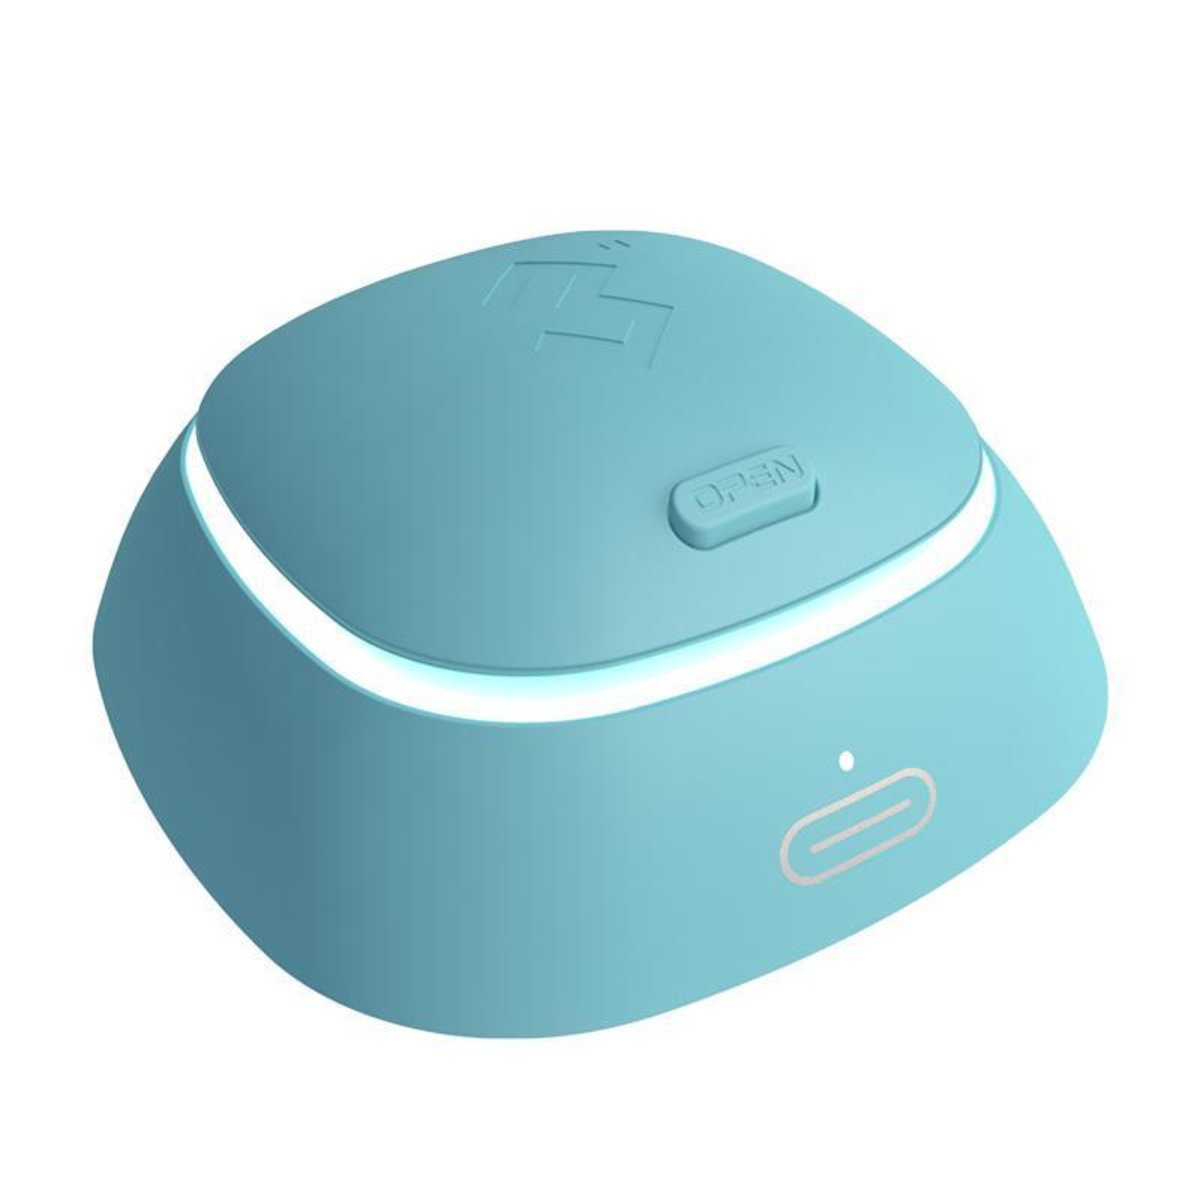 Contact lens cleaning machine fourth-generation standard version licensed in Hong Kong - Blue